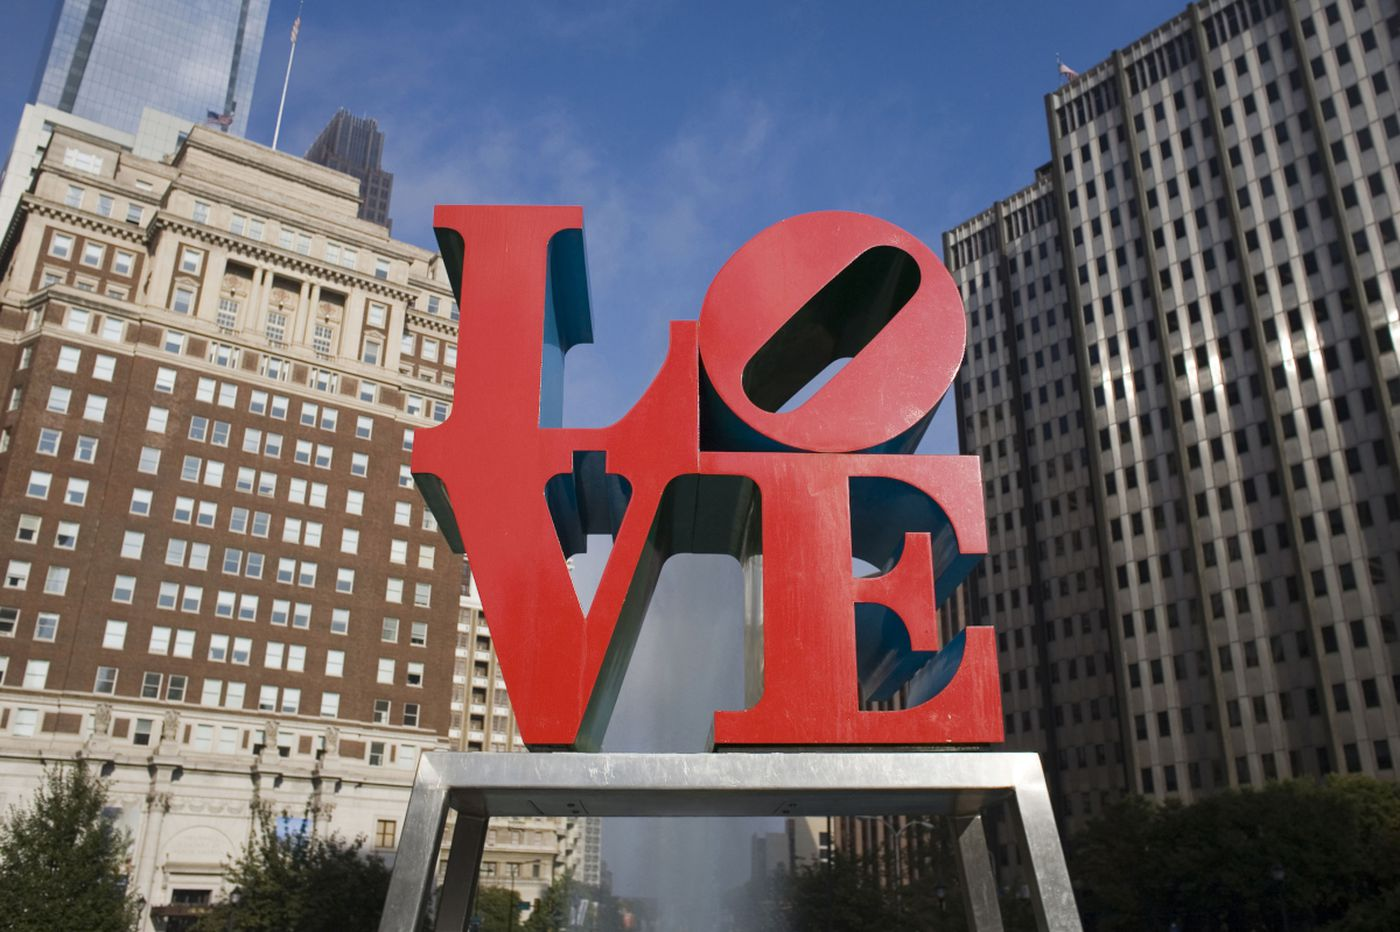 LOVE statue to leave town for repairs